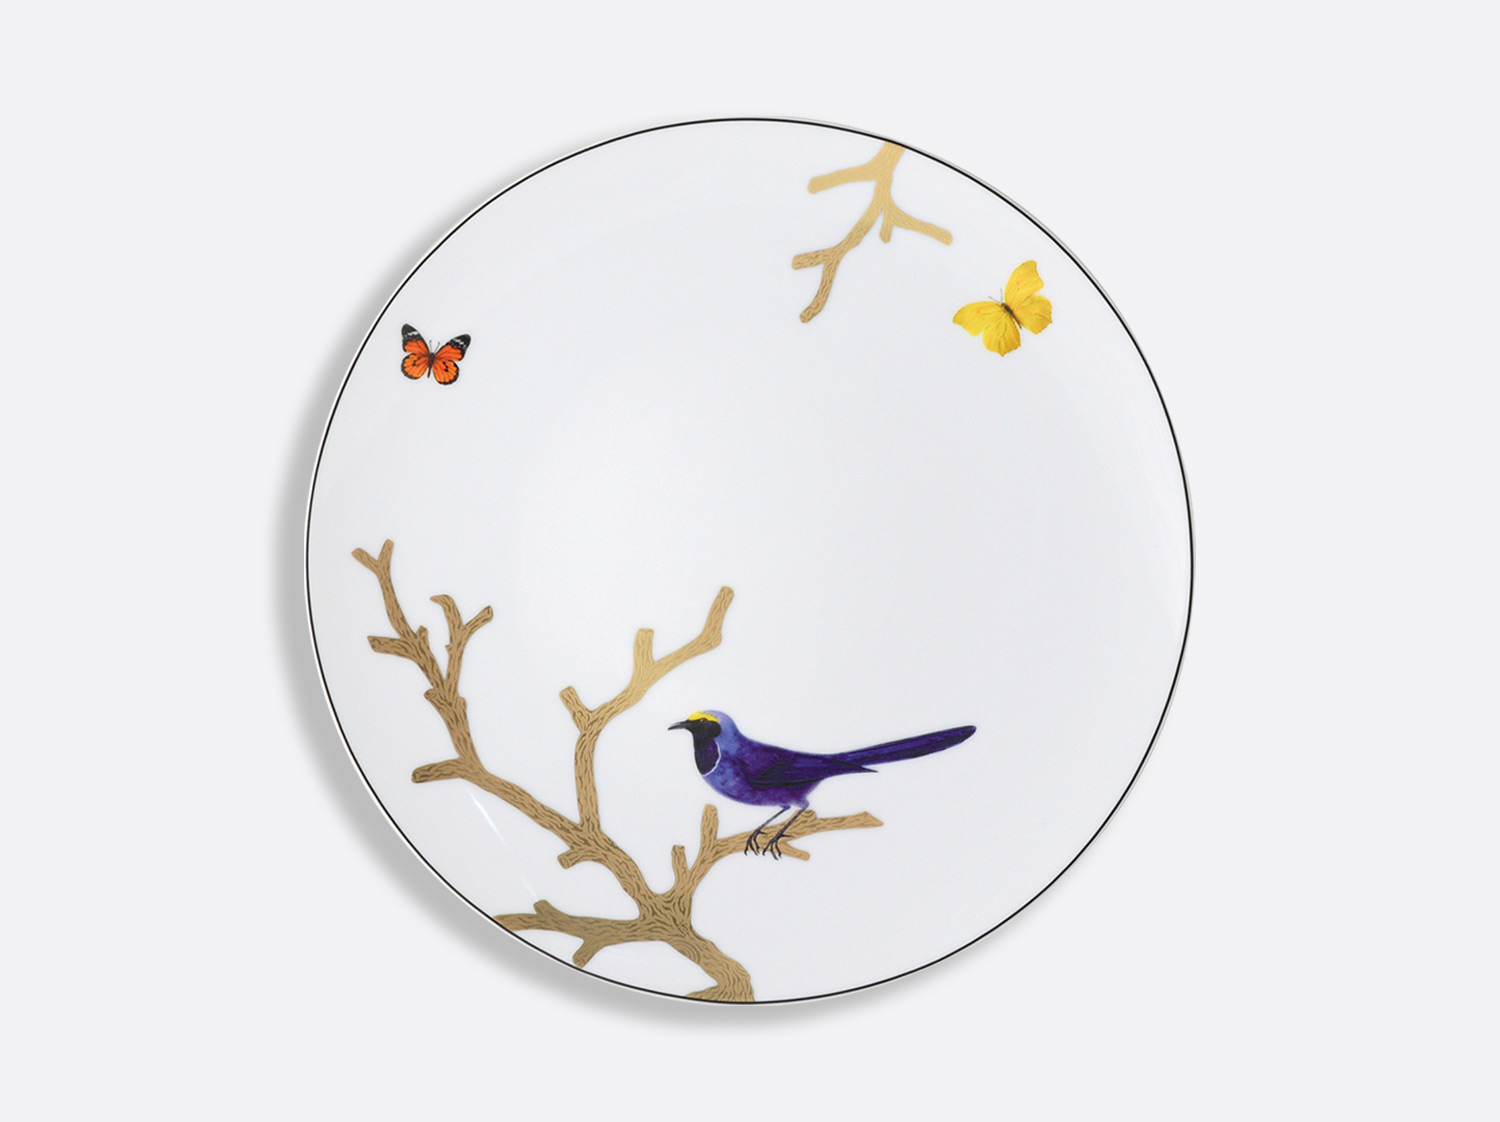 China ディナープレート 26cm  of the collection Aux oiseaux | Bernardaud